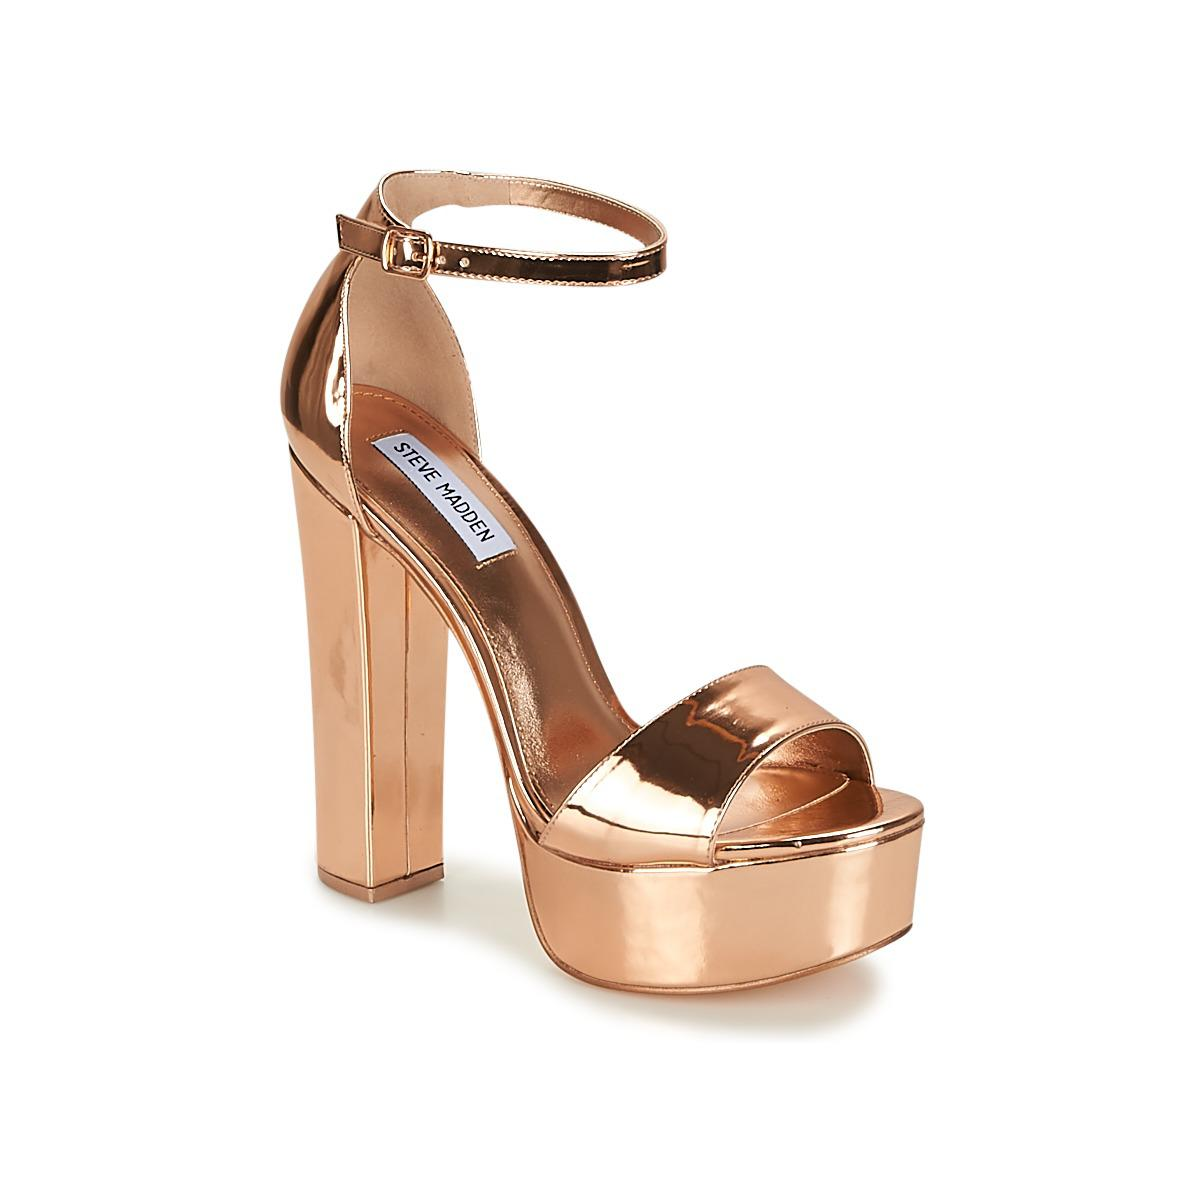 0ace5127d1e Steve Madden Gonzo Women s Sandals In Pink in Pink - Lyst